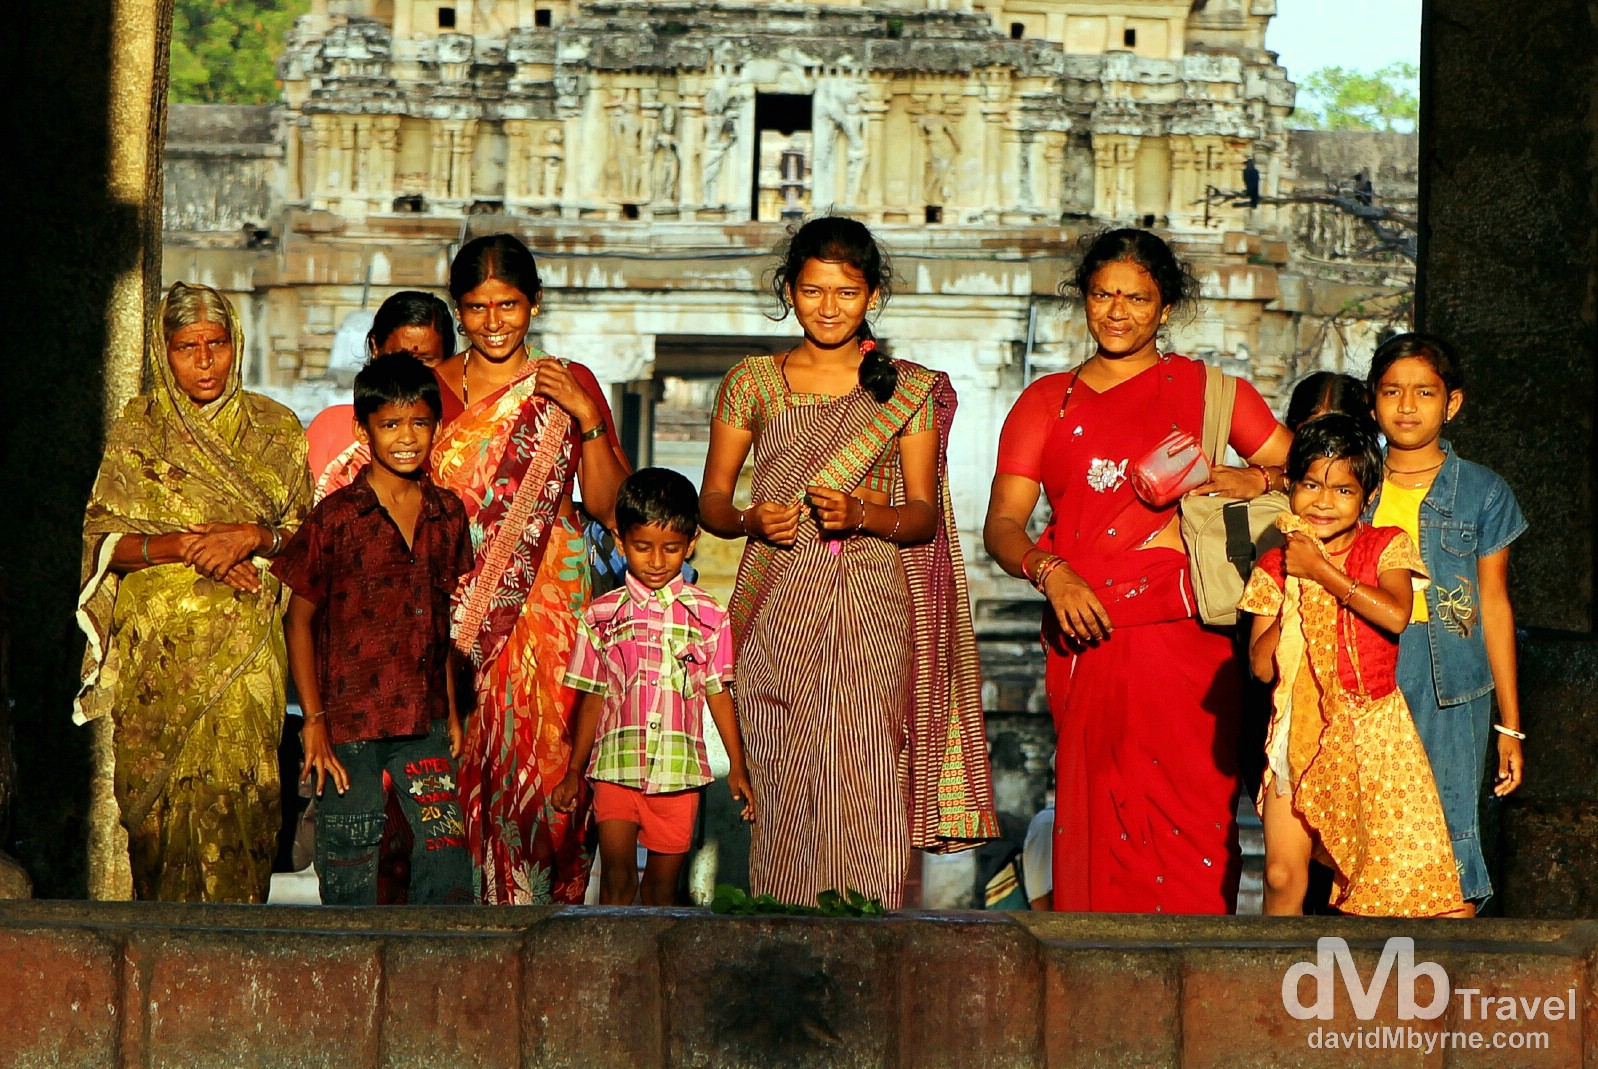 Dawn light illuminates a group of Indians exiting the Virupaksha Temple in Hampi, Karnataka, India. September 24th 2012.